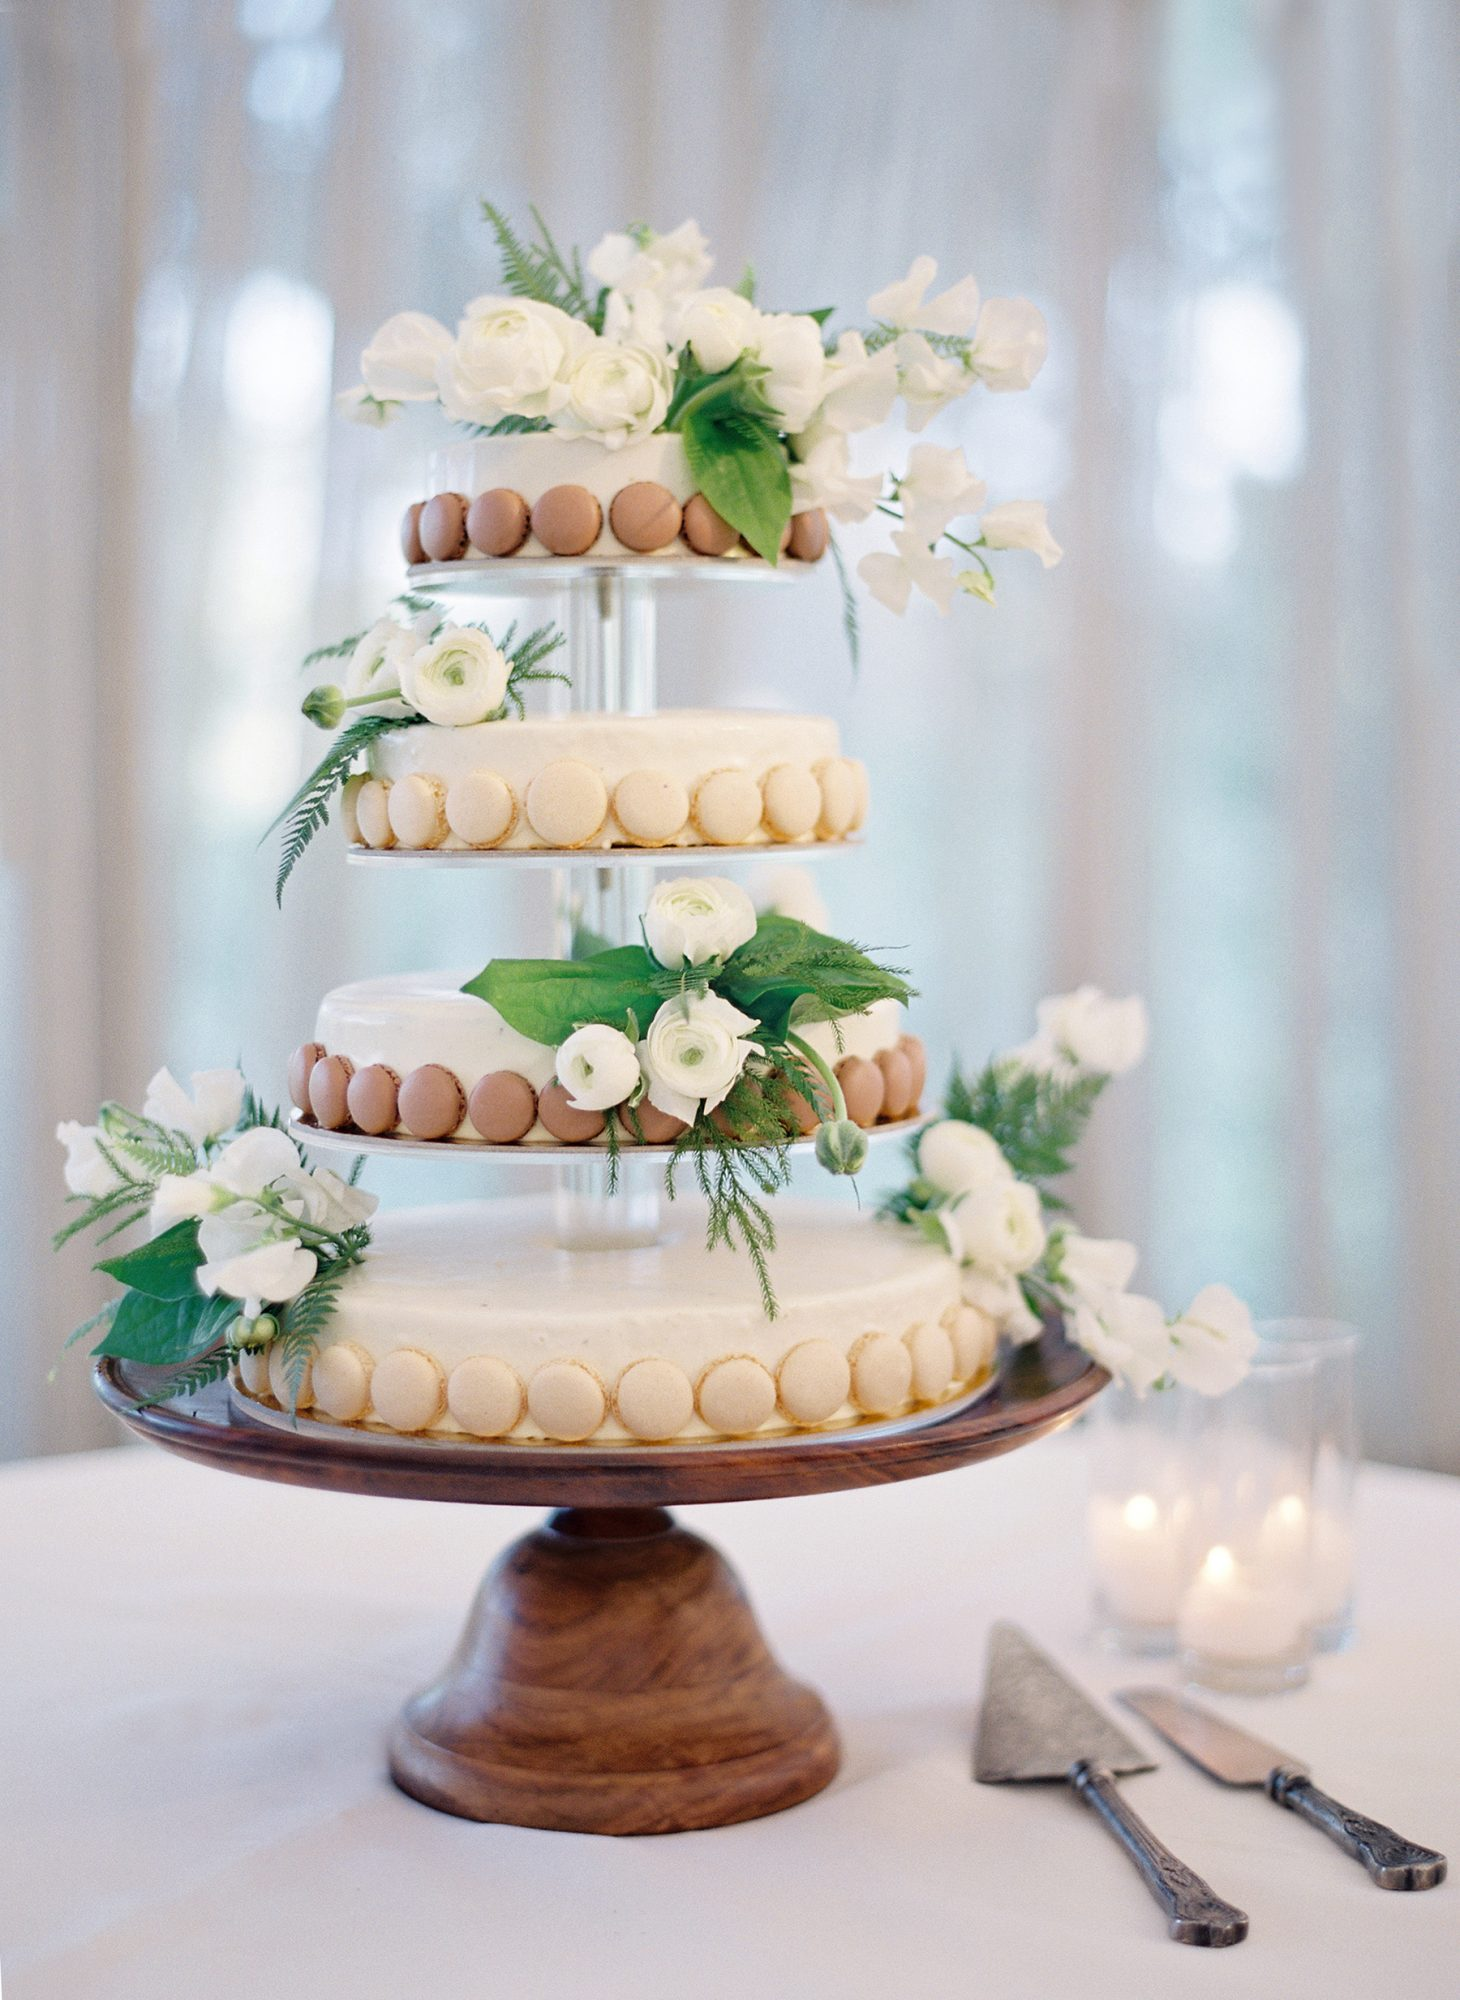 Serve French Macarons At Your Wedding